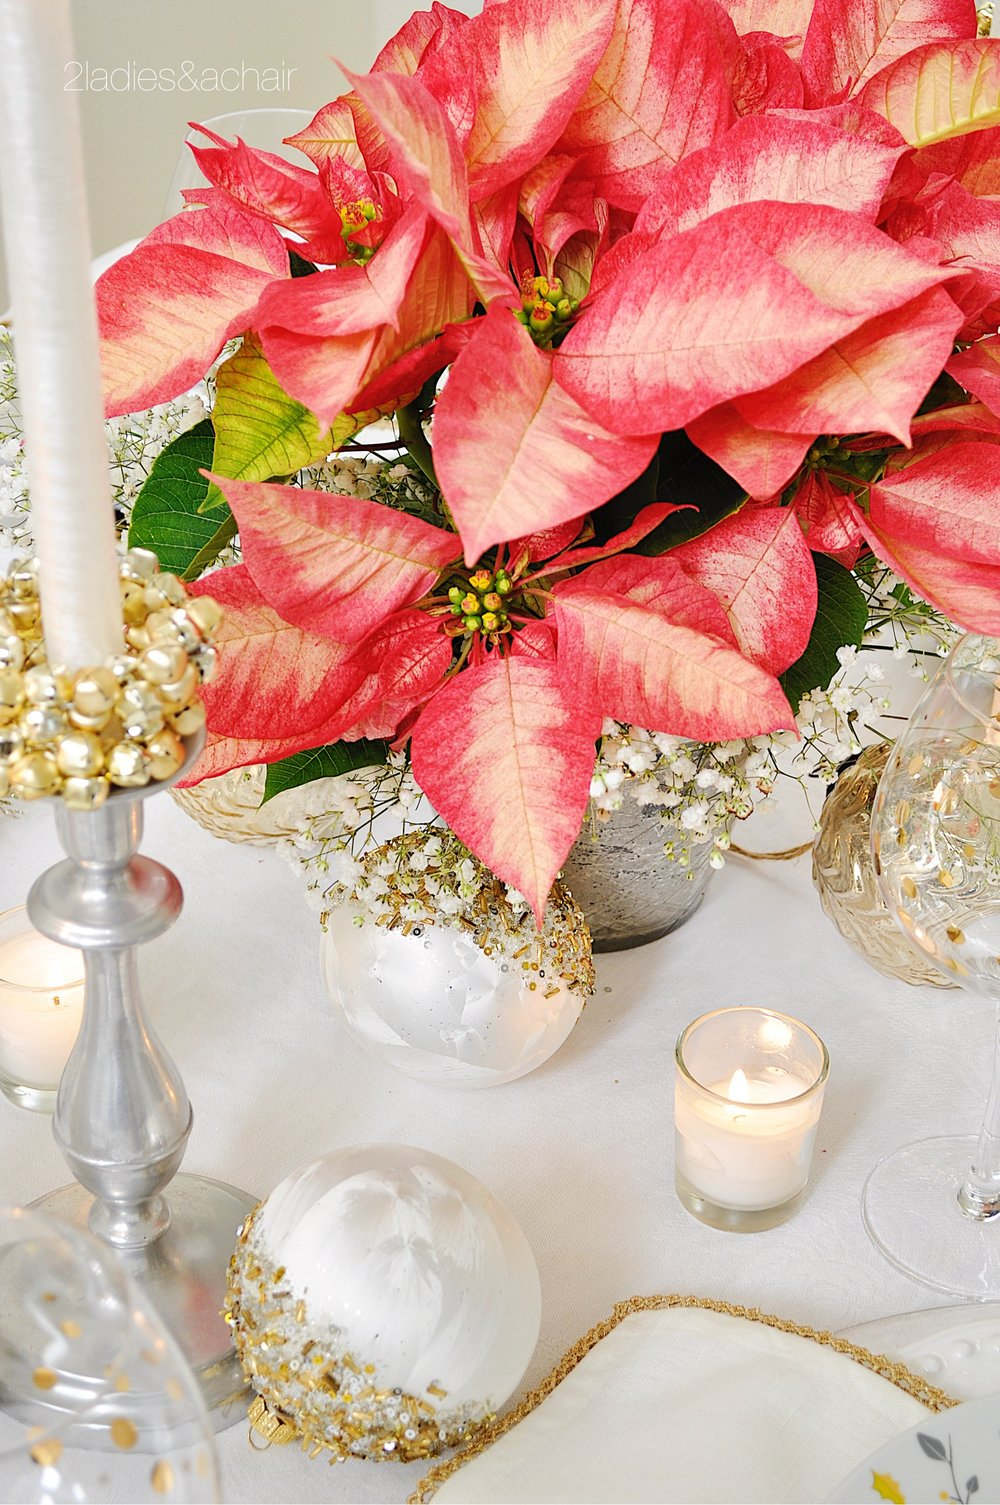 christmas tablescape ideas IMG_8754.JPG